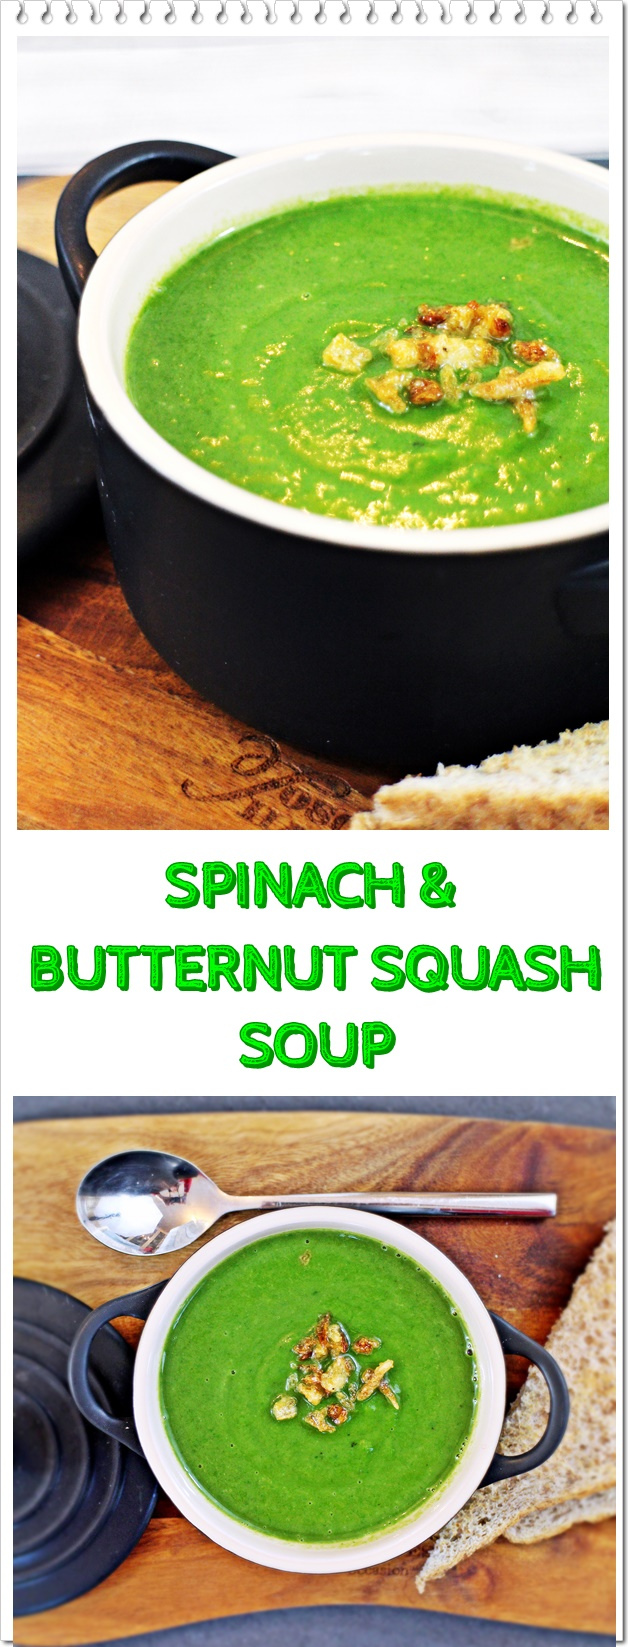 Spinach & Butternut Squash Soup - Fab Food 4 All